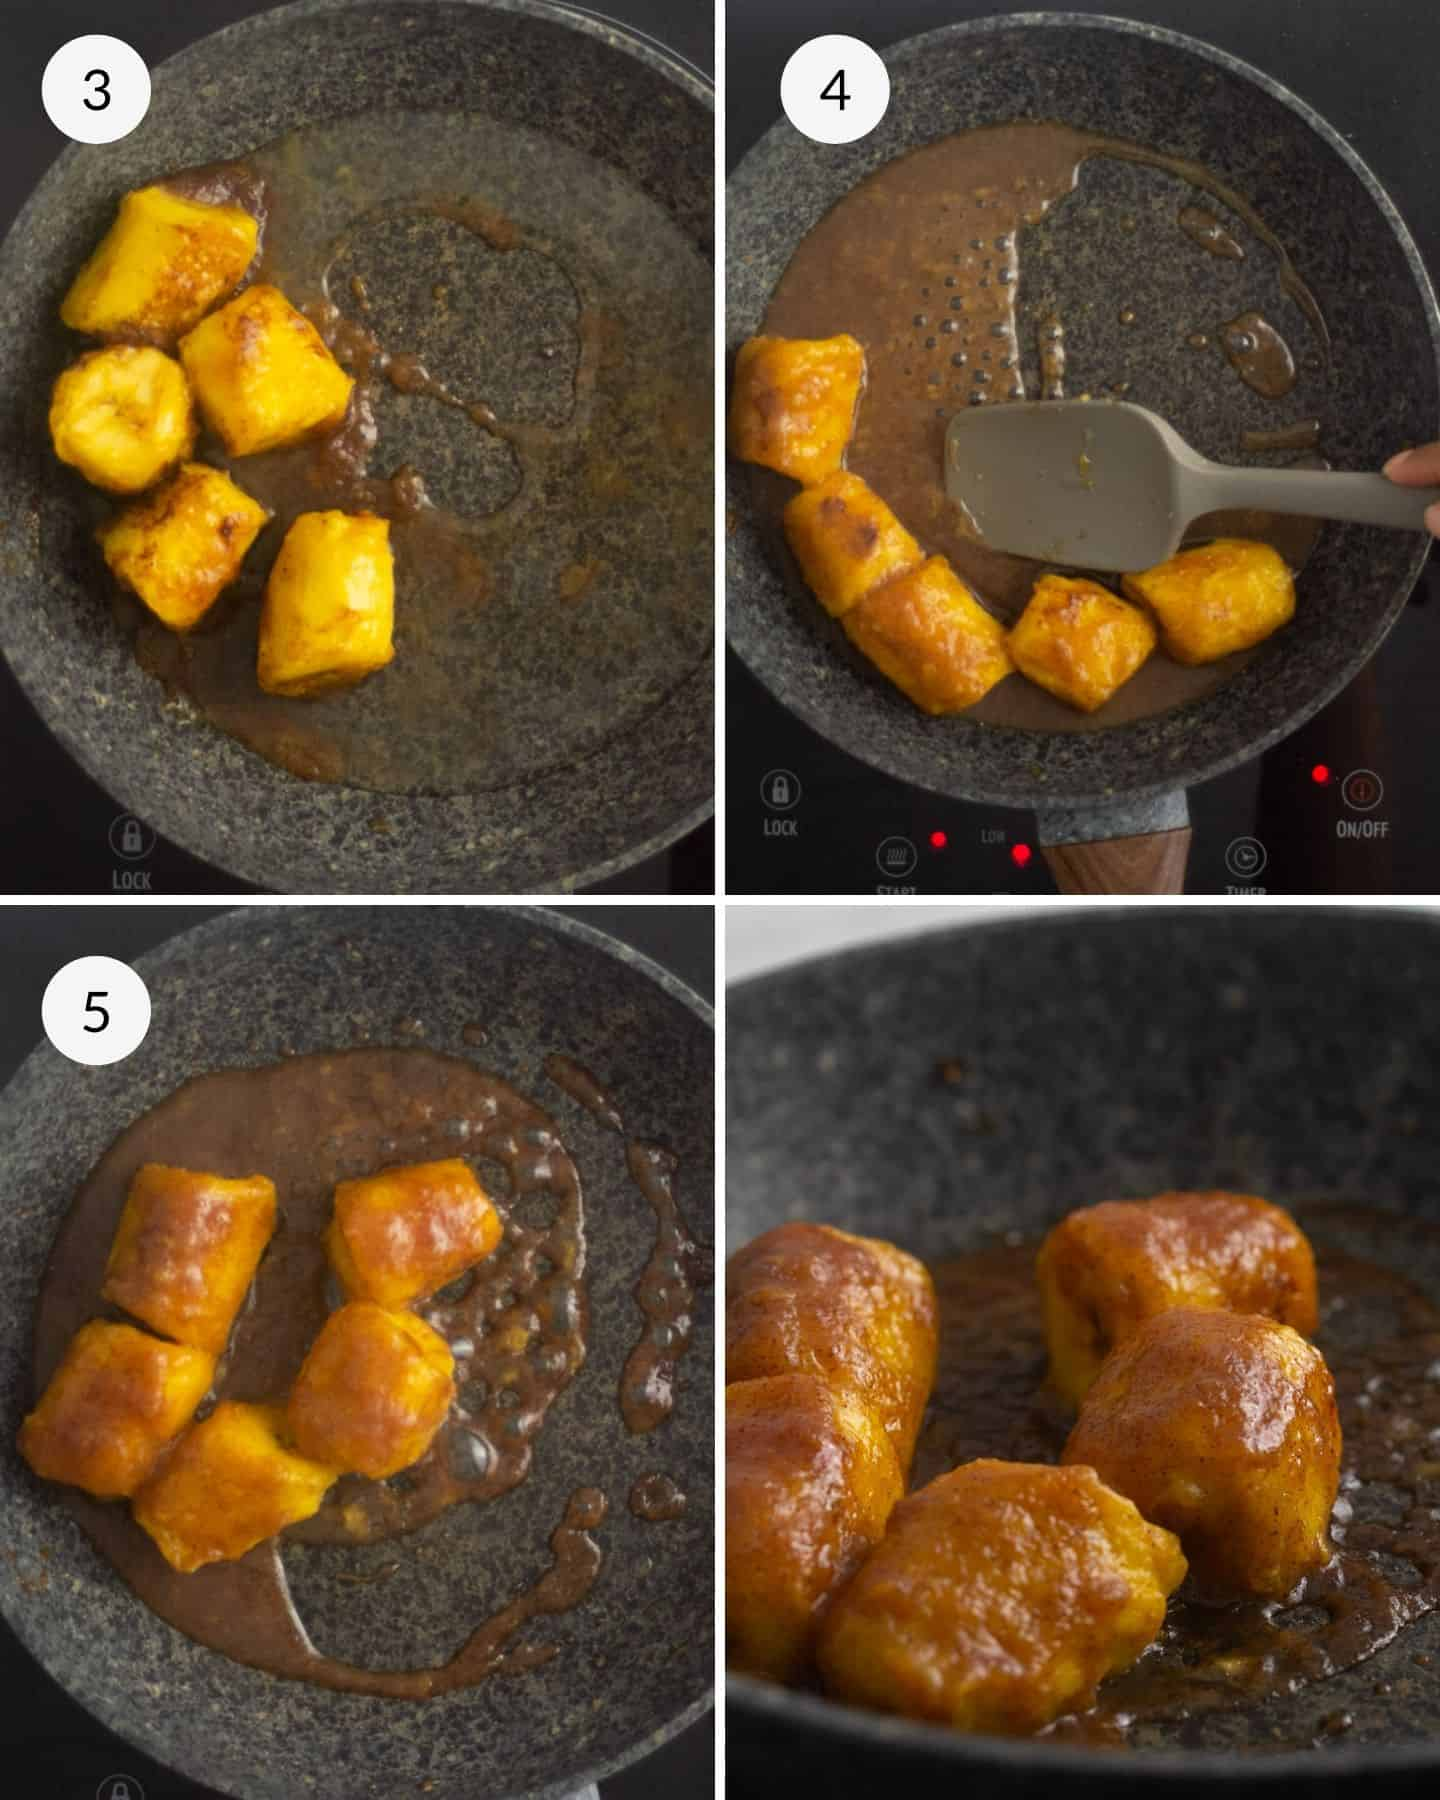 plantain cooking in a frying pan